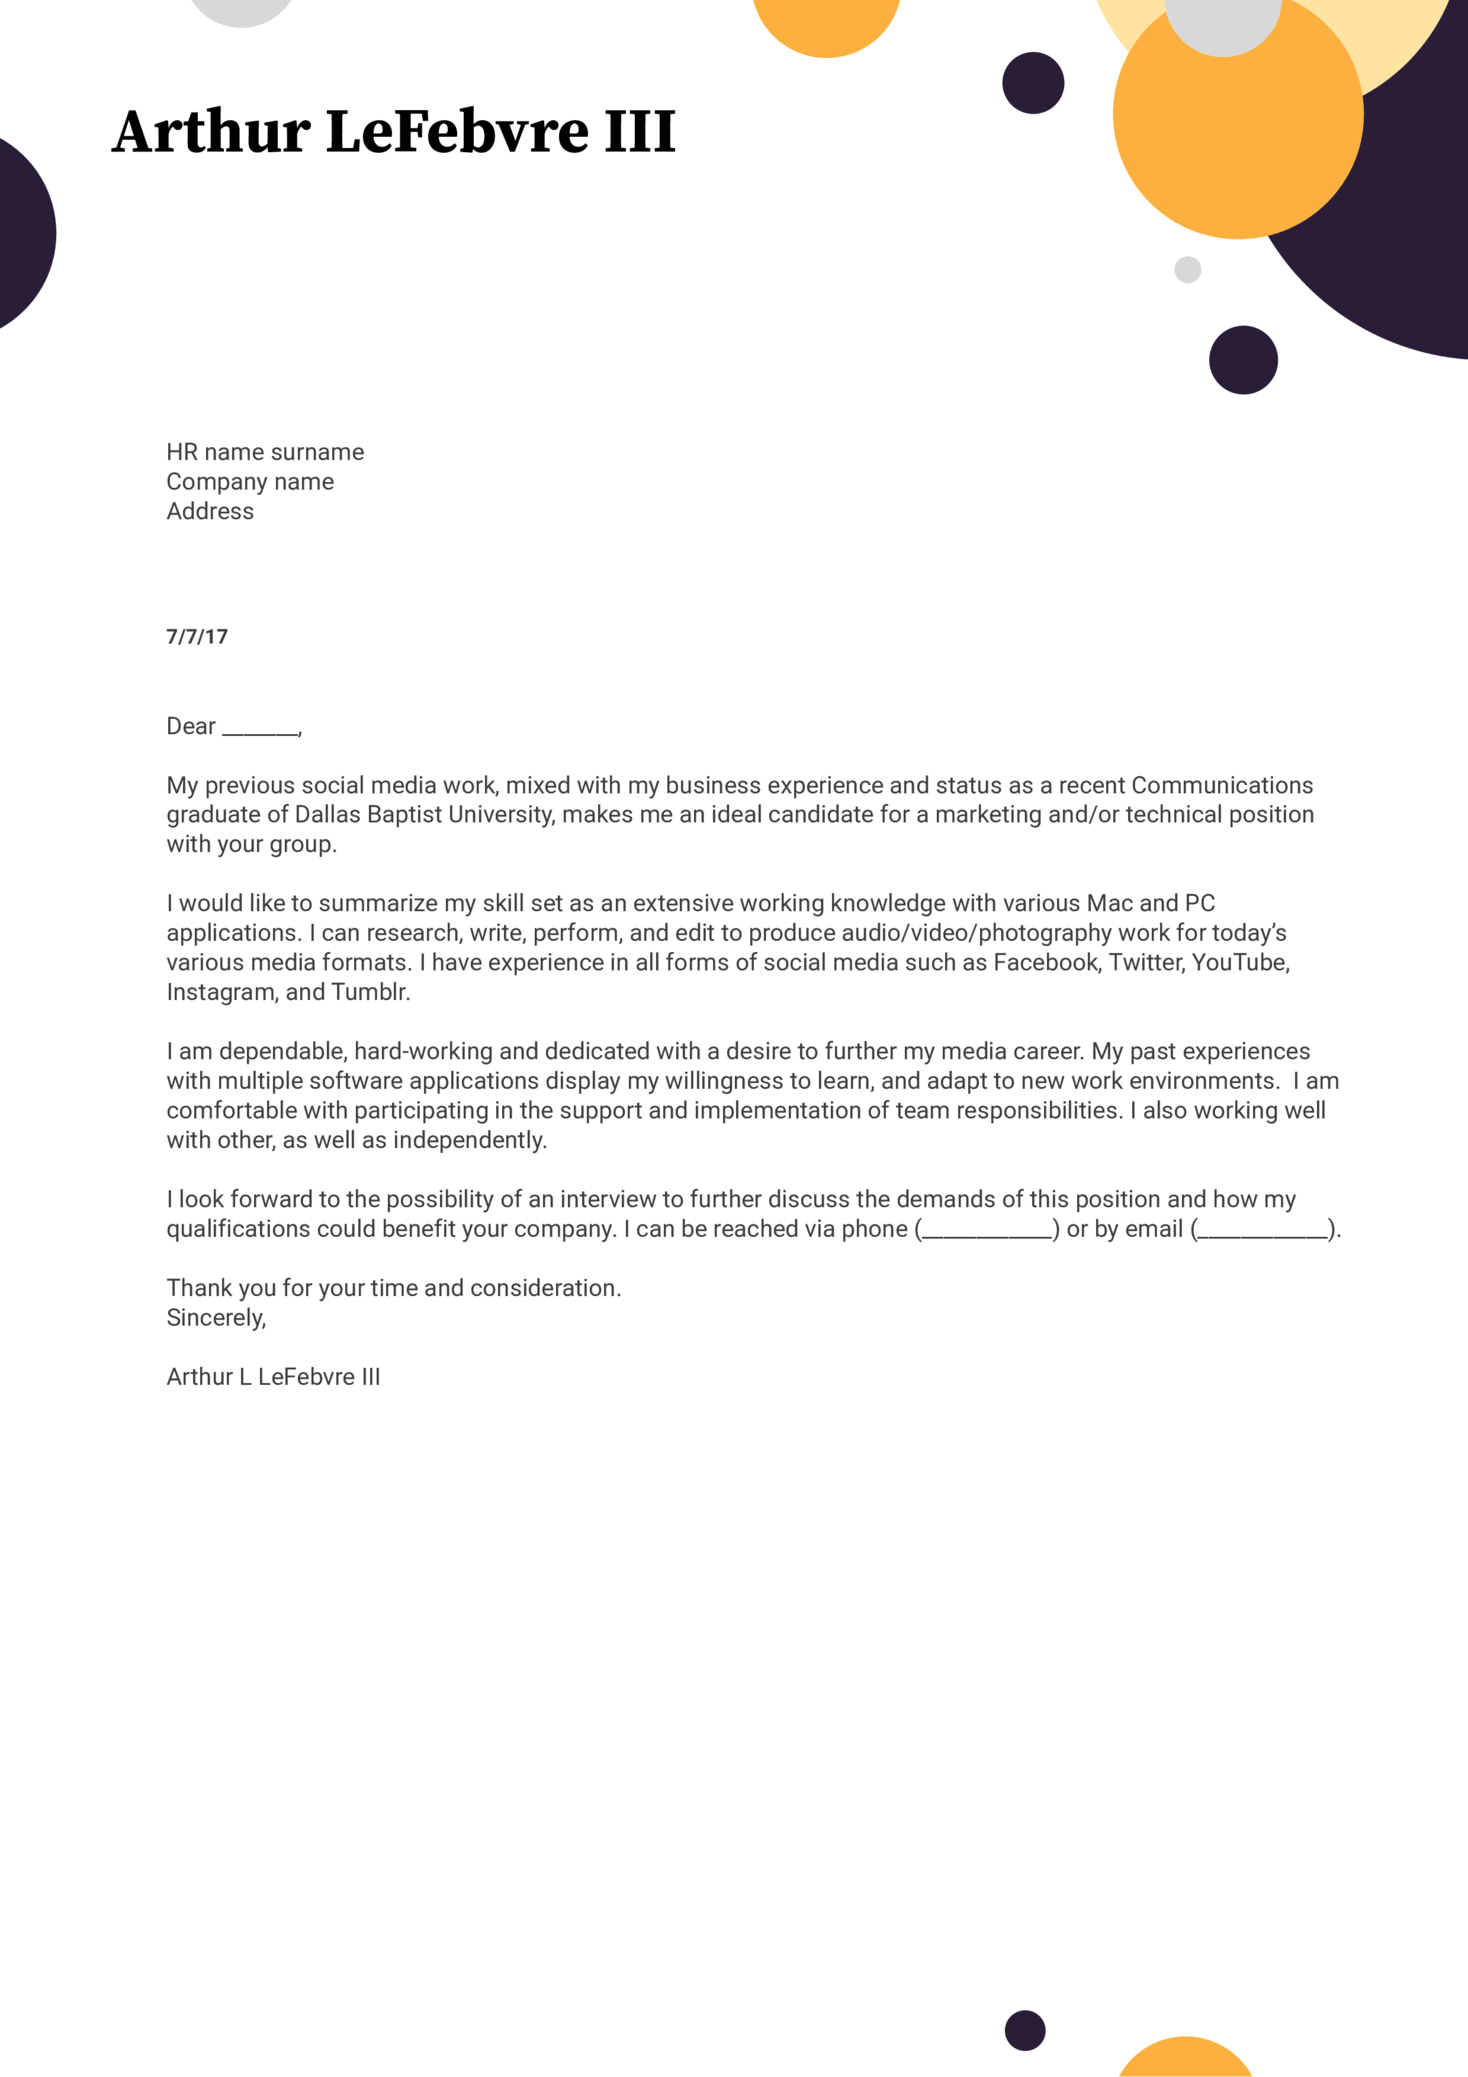 Cover Letter Examples by Real People Data Entry cover